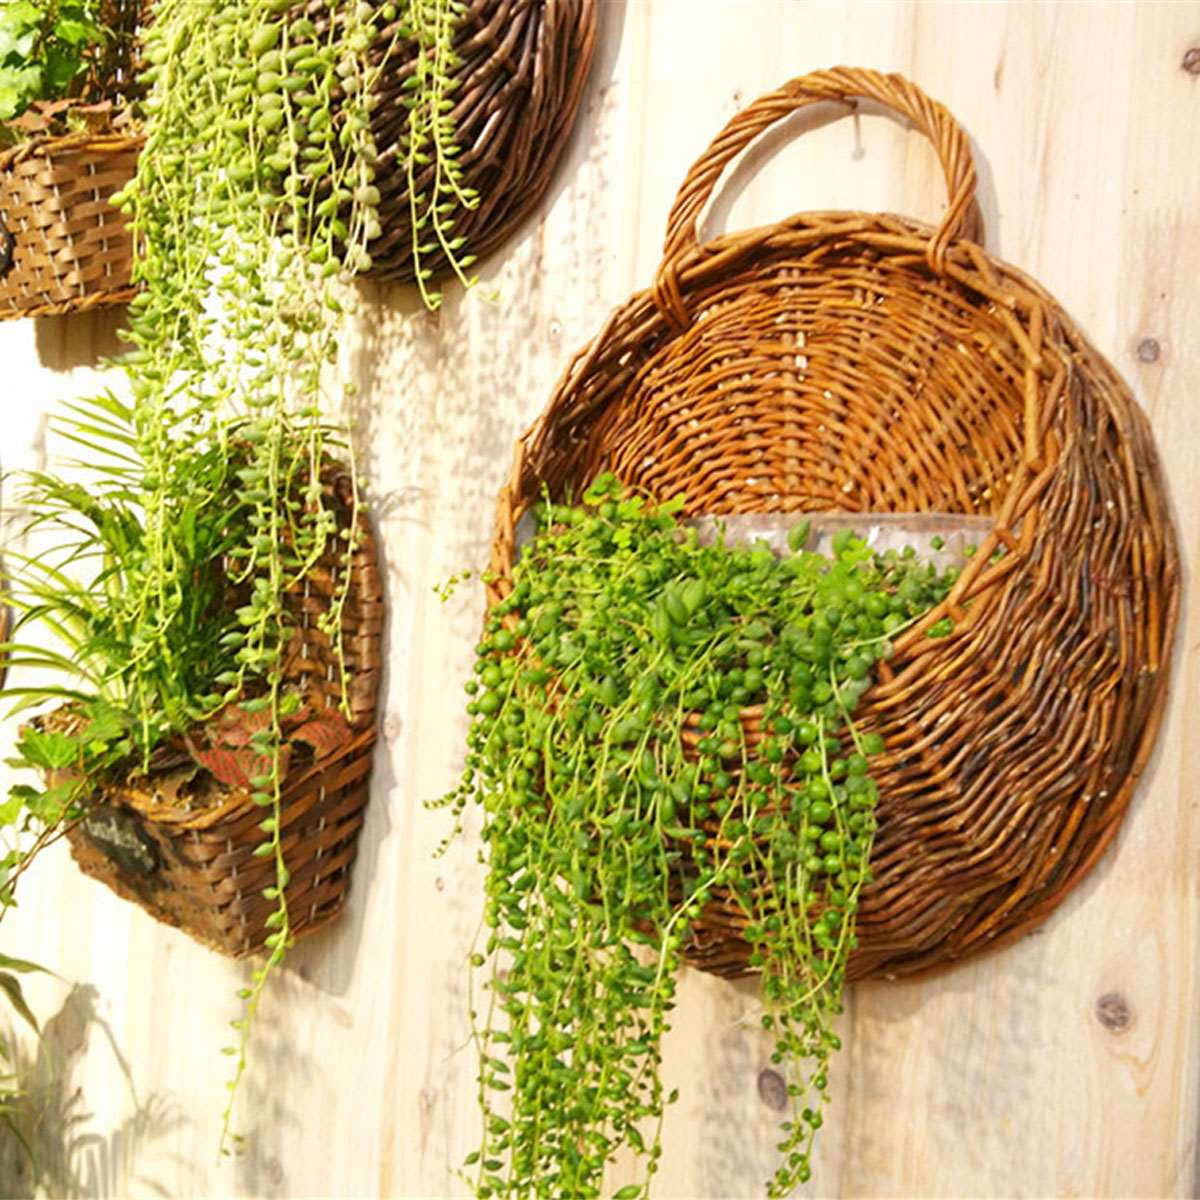 Wall Rattan Flower Baskets Decor Hanging Flower Pot for ... on Decorative Wall Sconces For Flowers Hanging Baskets Delivery id=98735